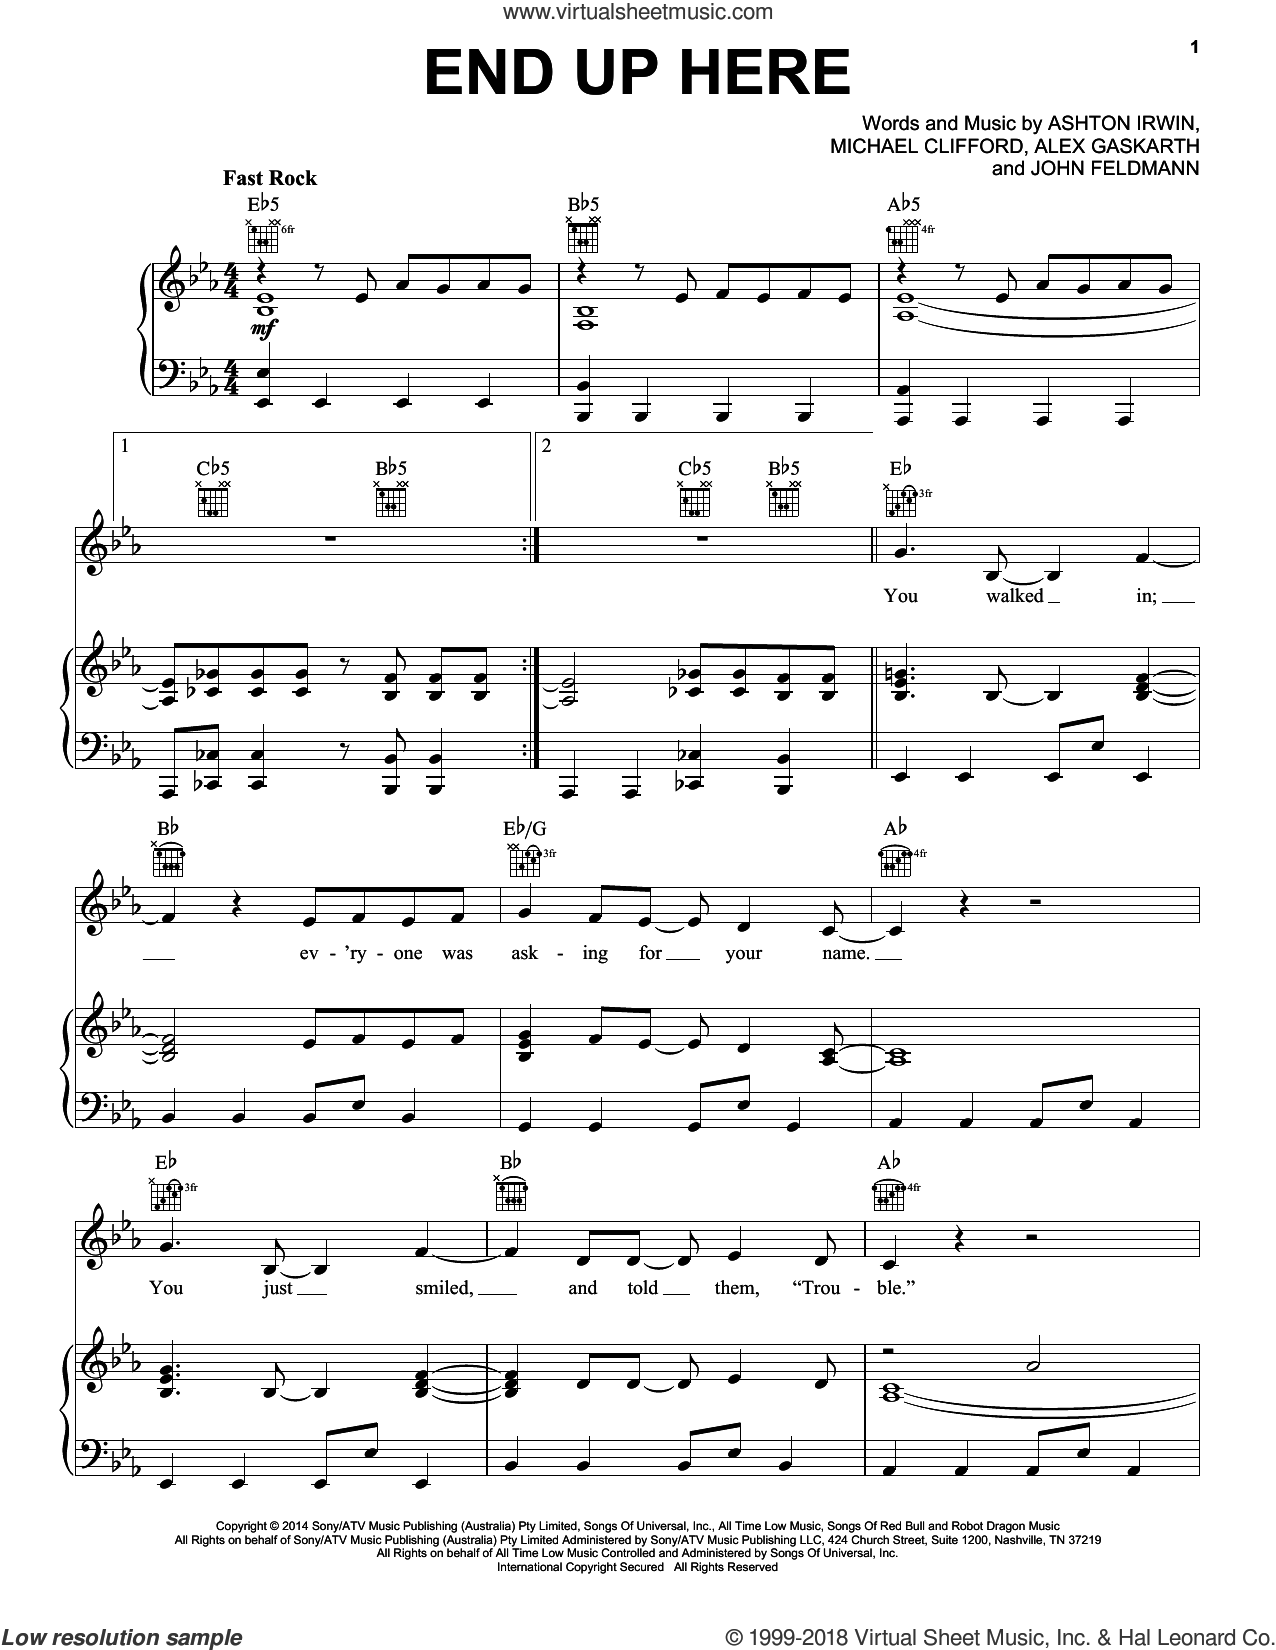 End Up Here sheet music for voice, piano or guitar by 5 Seconds of Summer, Alex Gaskarth, Ashton Irwin, John Feldmann and Michael Clifford, intermediate skill level